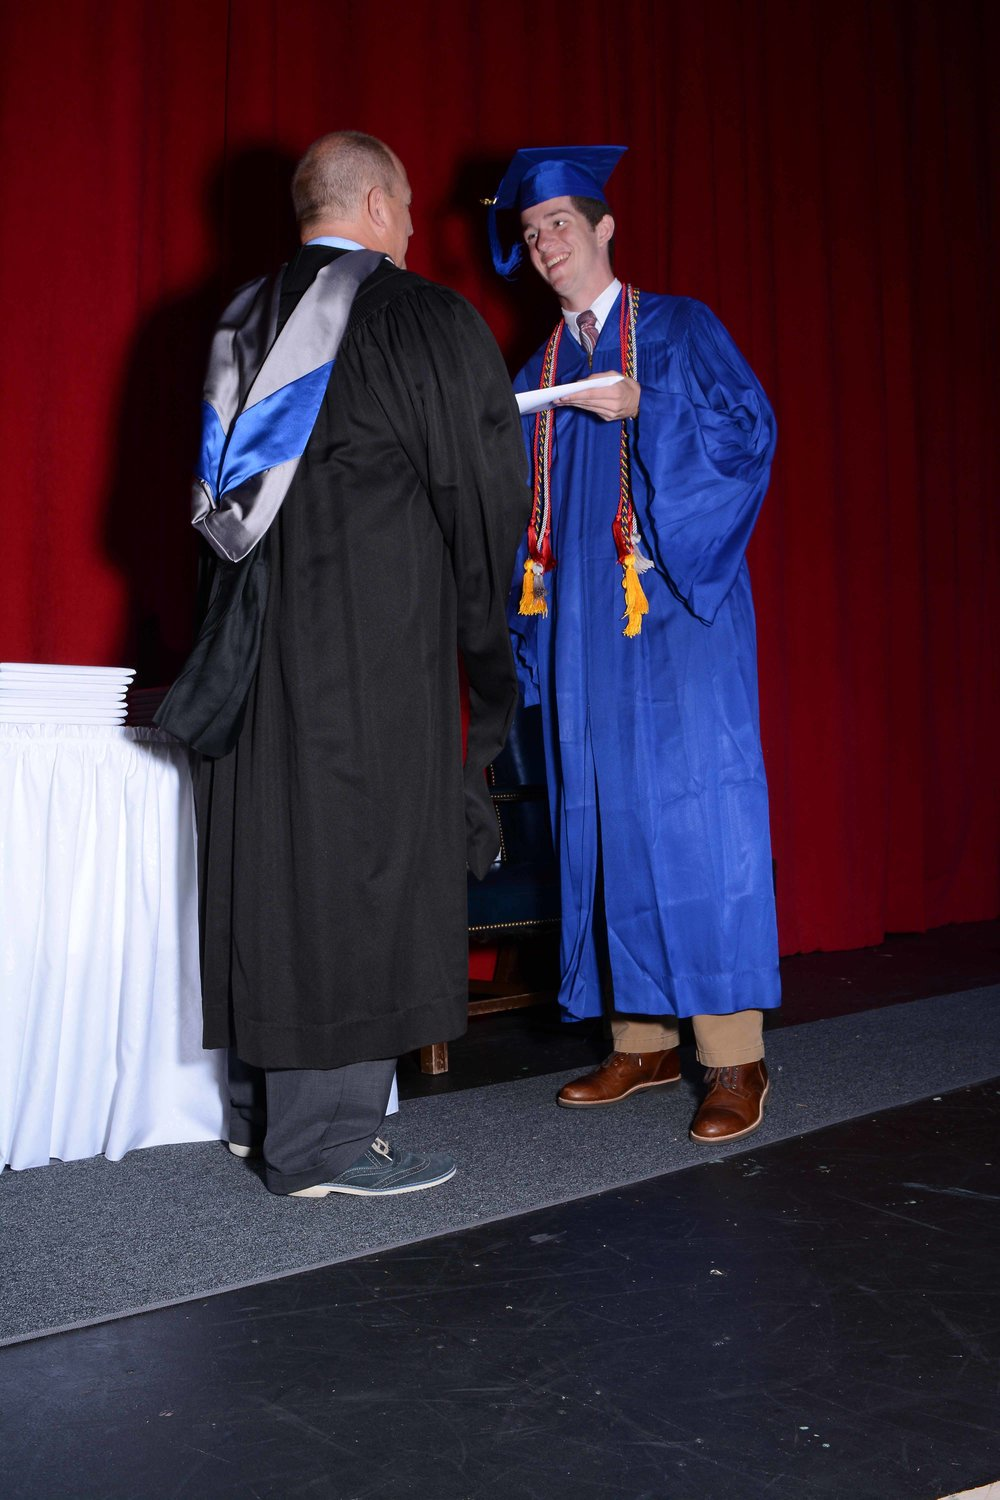 May14 Commencement129.jpg